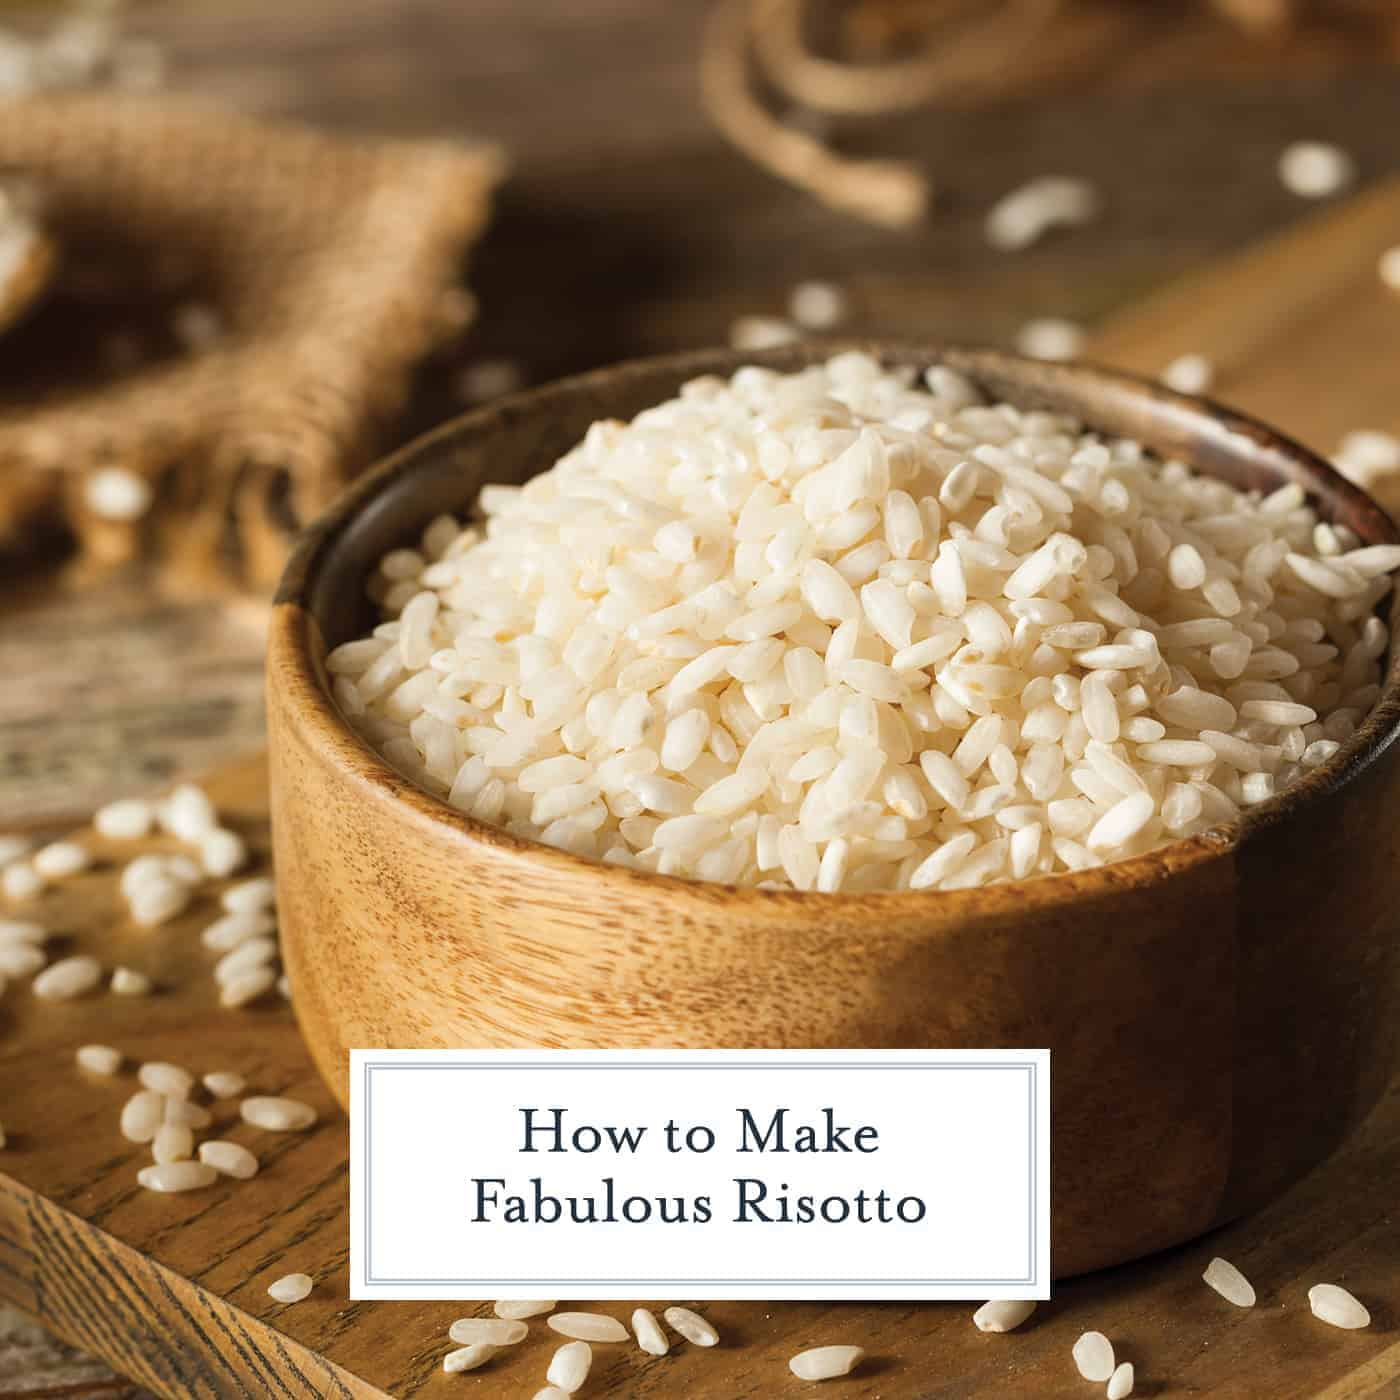 Risotto isn't just a restaurant dish. You can make any risotto recipe at home using these easy tips and tricks! Plus, six ways to make risotto! #howtomakerisotto #risottorecipes www.savoryexperiments.com